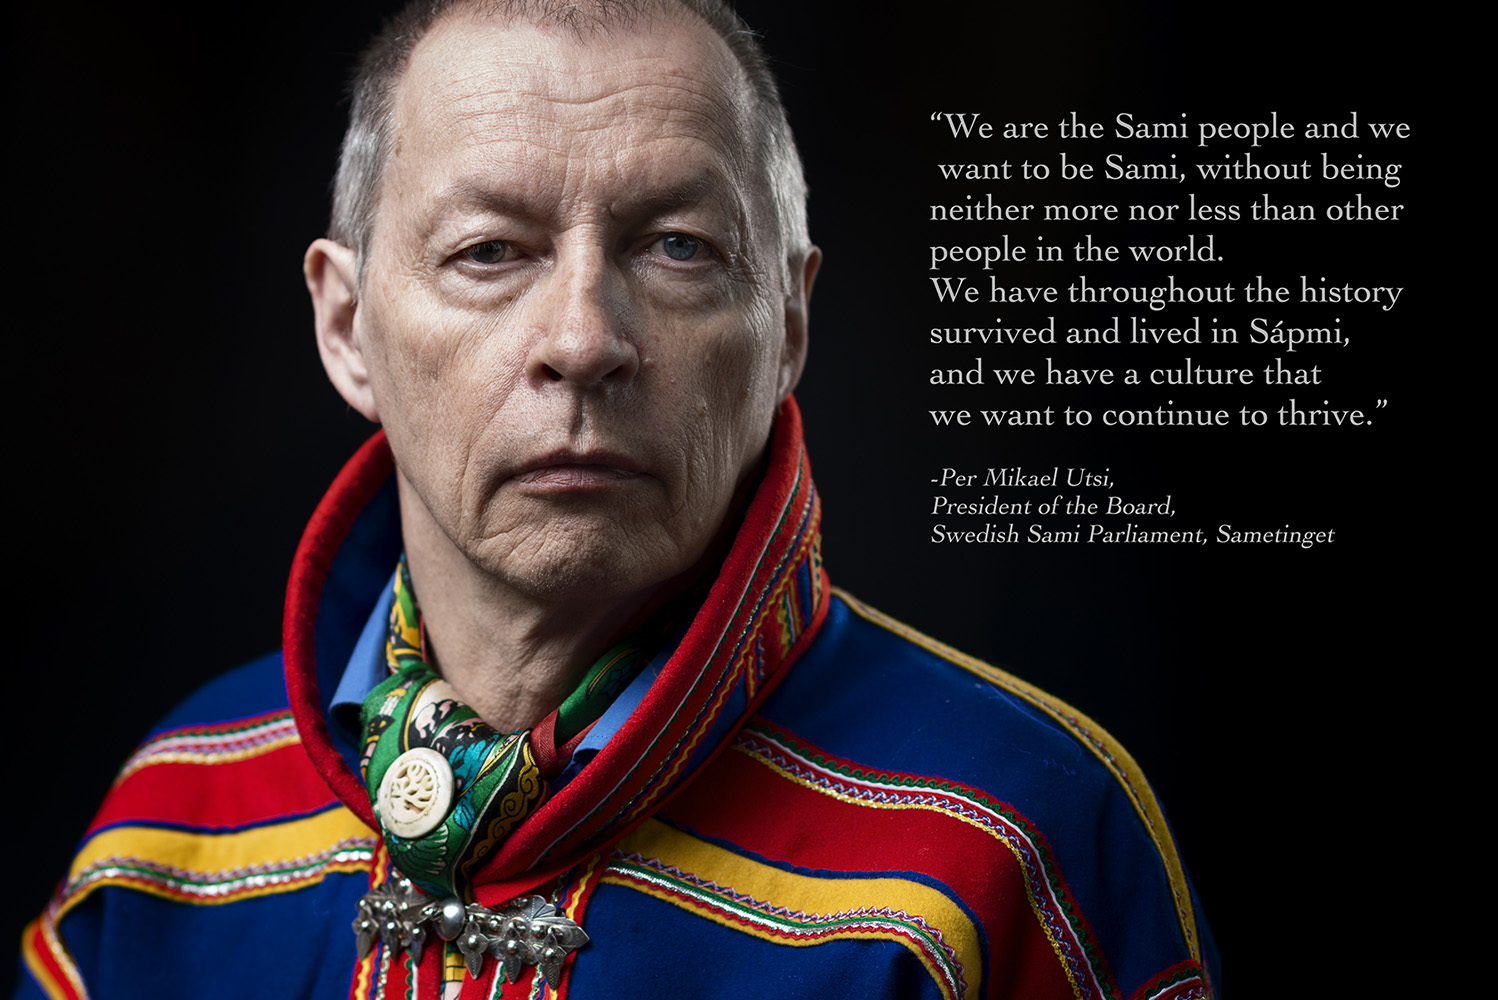 "Per Mikael Utsi, President of the Board, Swedish Sami Parliament, Sametinget ""We are the Sami people and we want to be Sami, without being neither more nor less than other people in the world. We have throughout the history survived and lived in Sápmi, and we have a culture that we want to continue to thrive."""